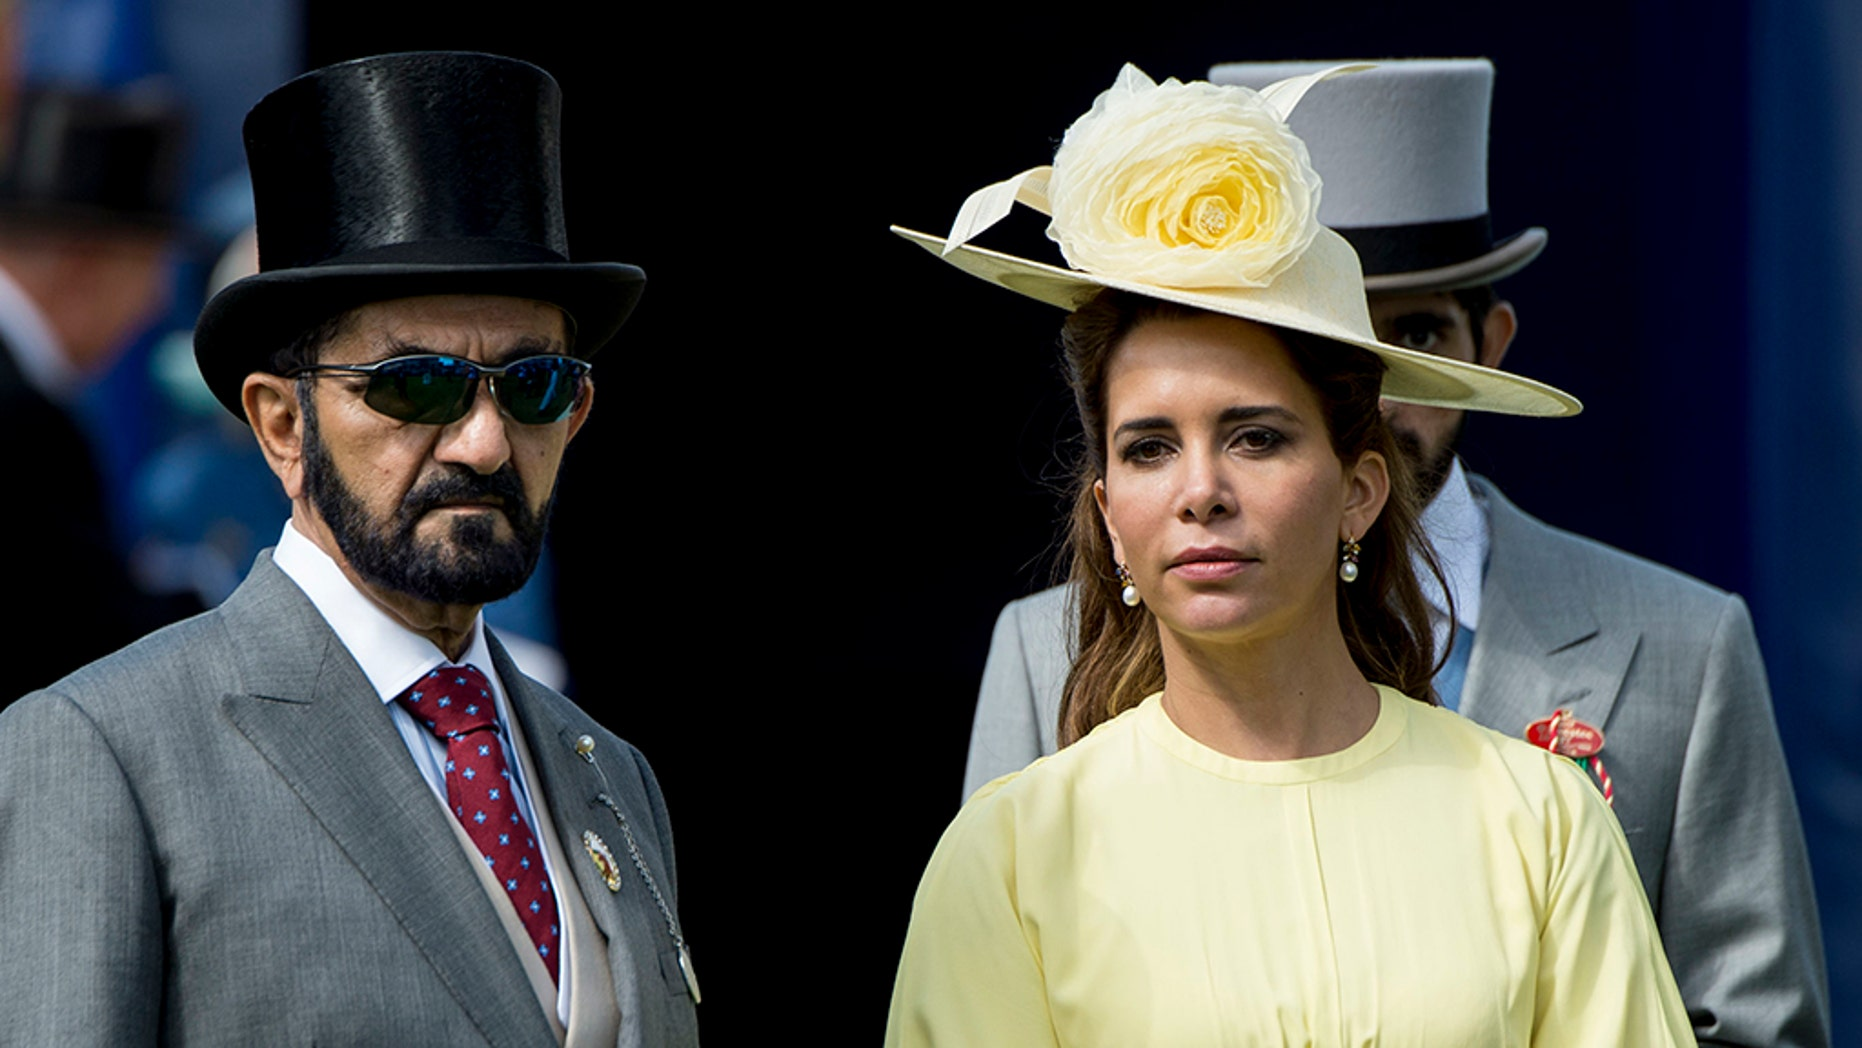 Westlake Legal Group Princess-Haya-Sheikh-Mohammed-2-Getty Dubai ruler's wife, Princess Haya, goes into hiding in UK and hires divorce lawyer: report fox-news/world/world-regions/united-kingdom fox-news/travel/regions/europe fox-news/politics/foreign-policy/middle-east fox news fnc/entertainment fnc Elizabeth Llorente article 925cedf0-0b67-5862-9730-47f6529062fd